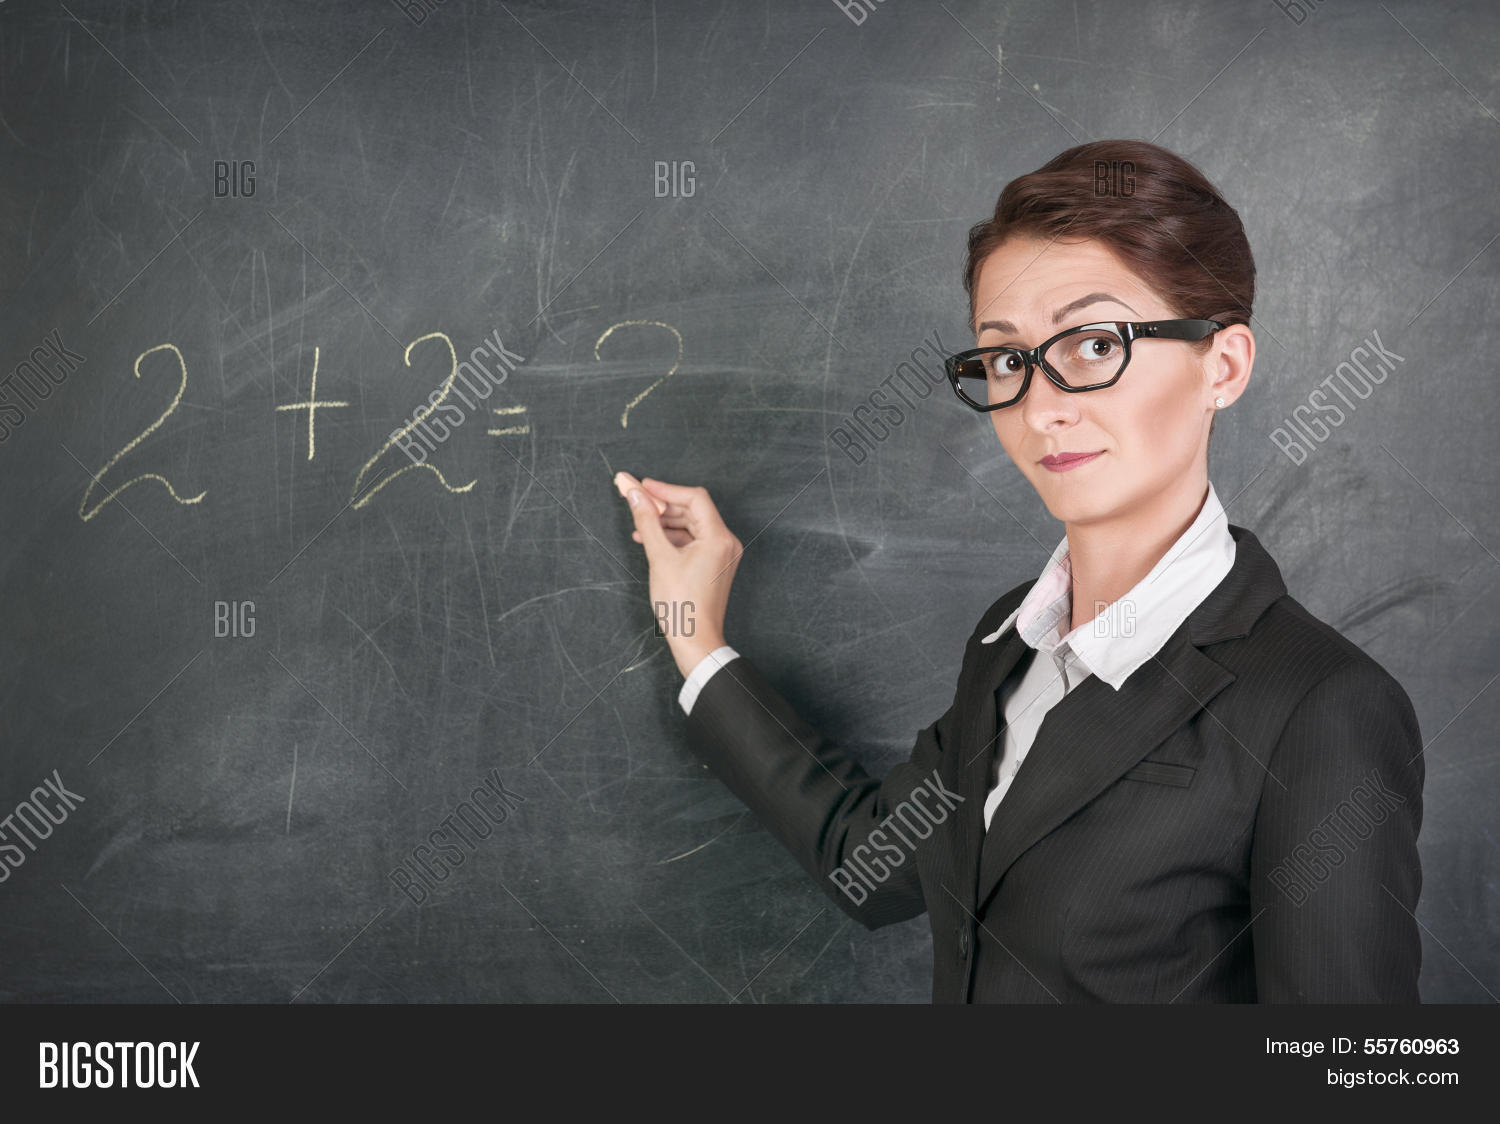 Teaching Maths Woman Teacher Teaching Maths Image Photo Bigstock